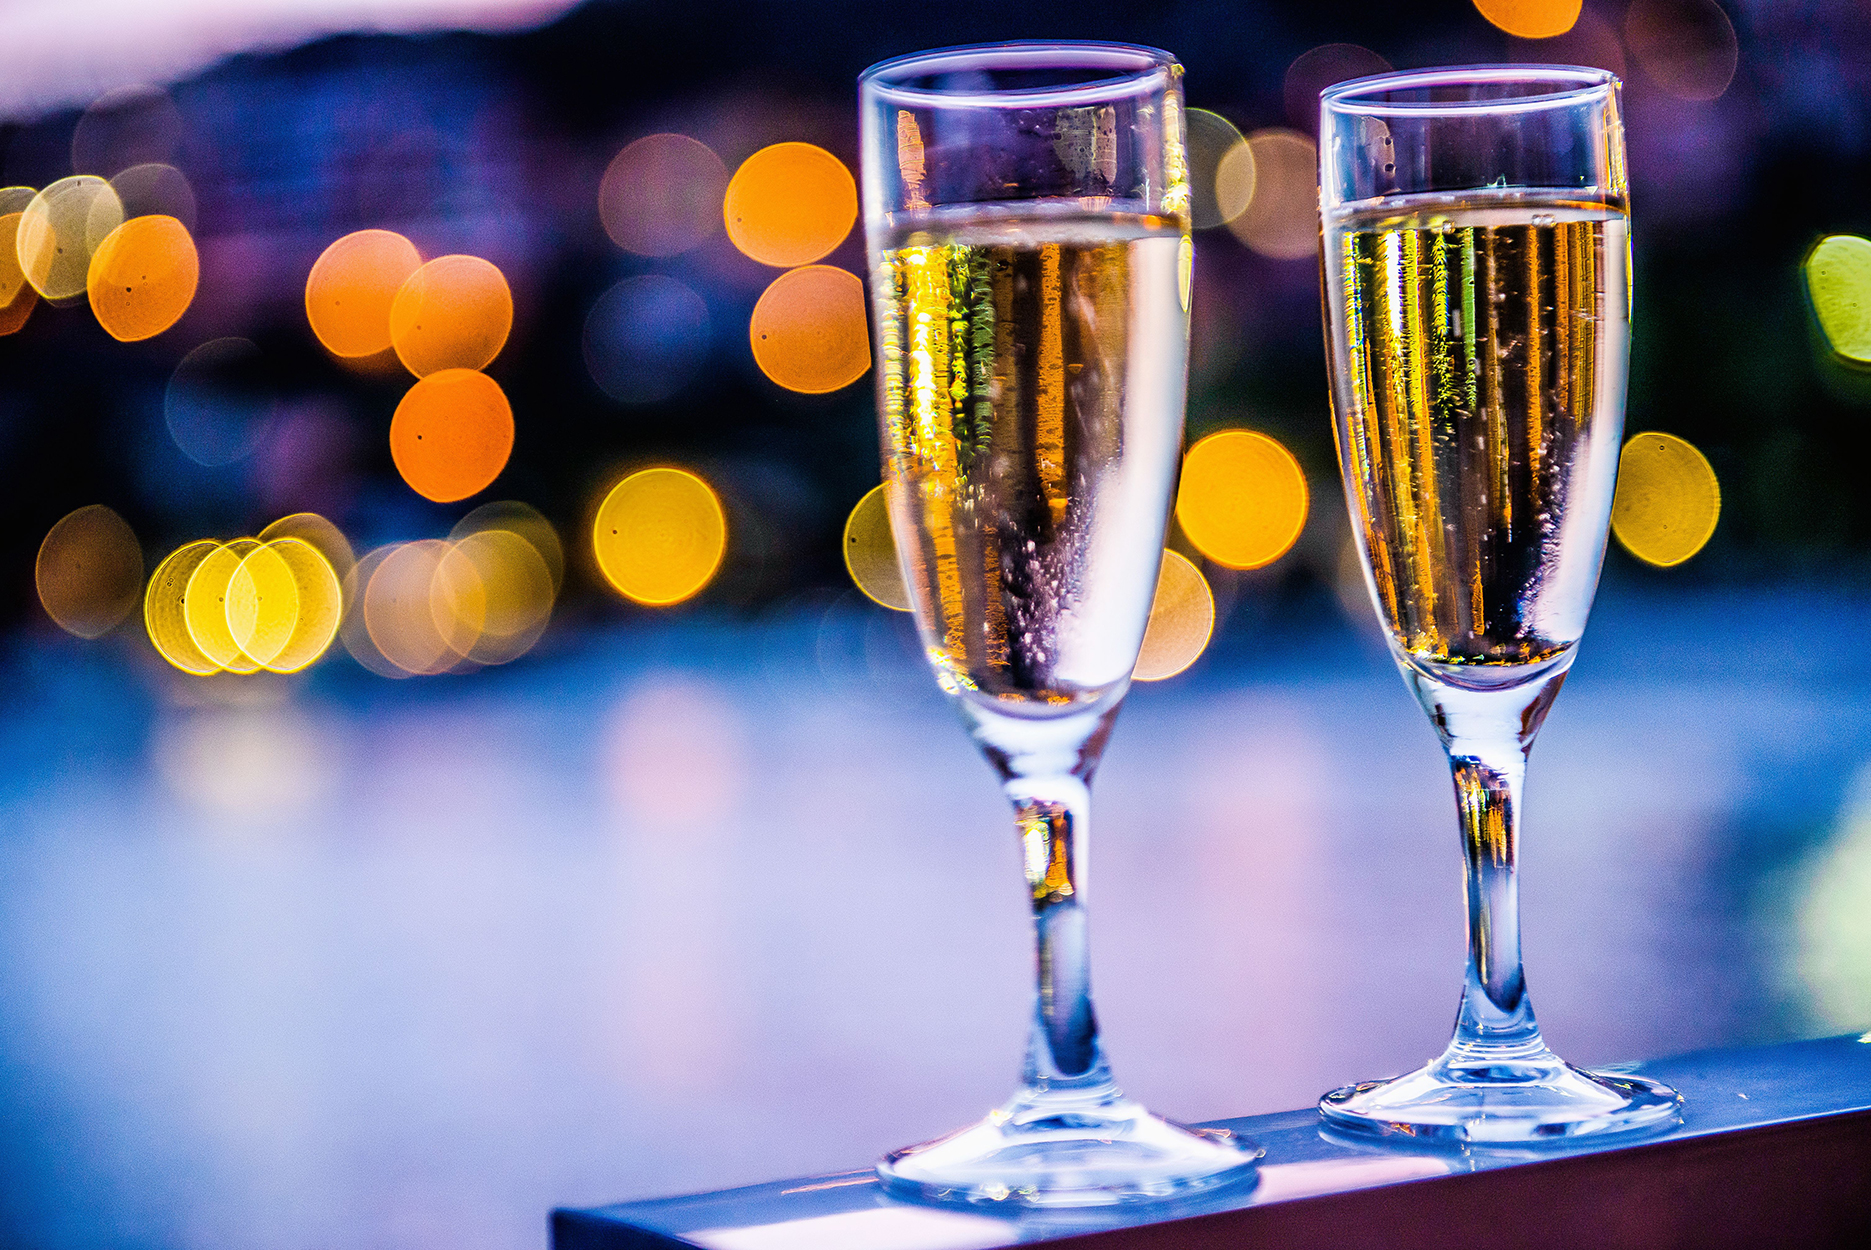 Champagne flute and night atmosphere